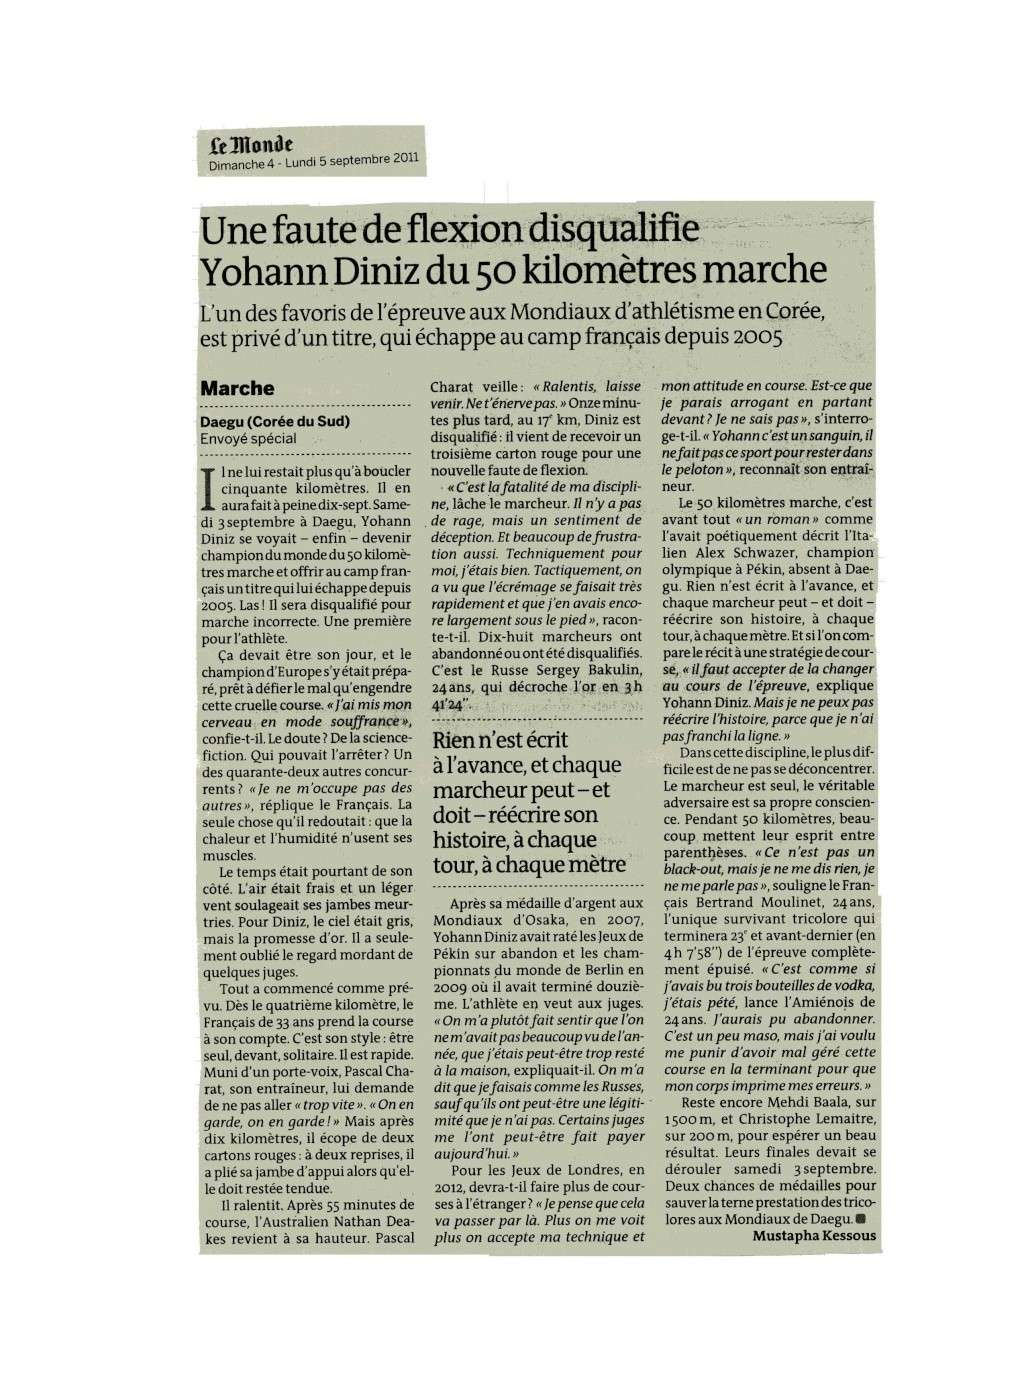 le journal de MOULINET  Bertrand avec cybermarcheur Book0212